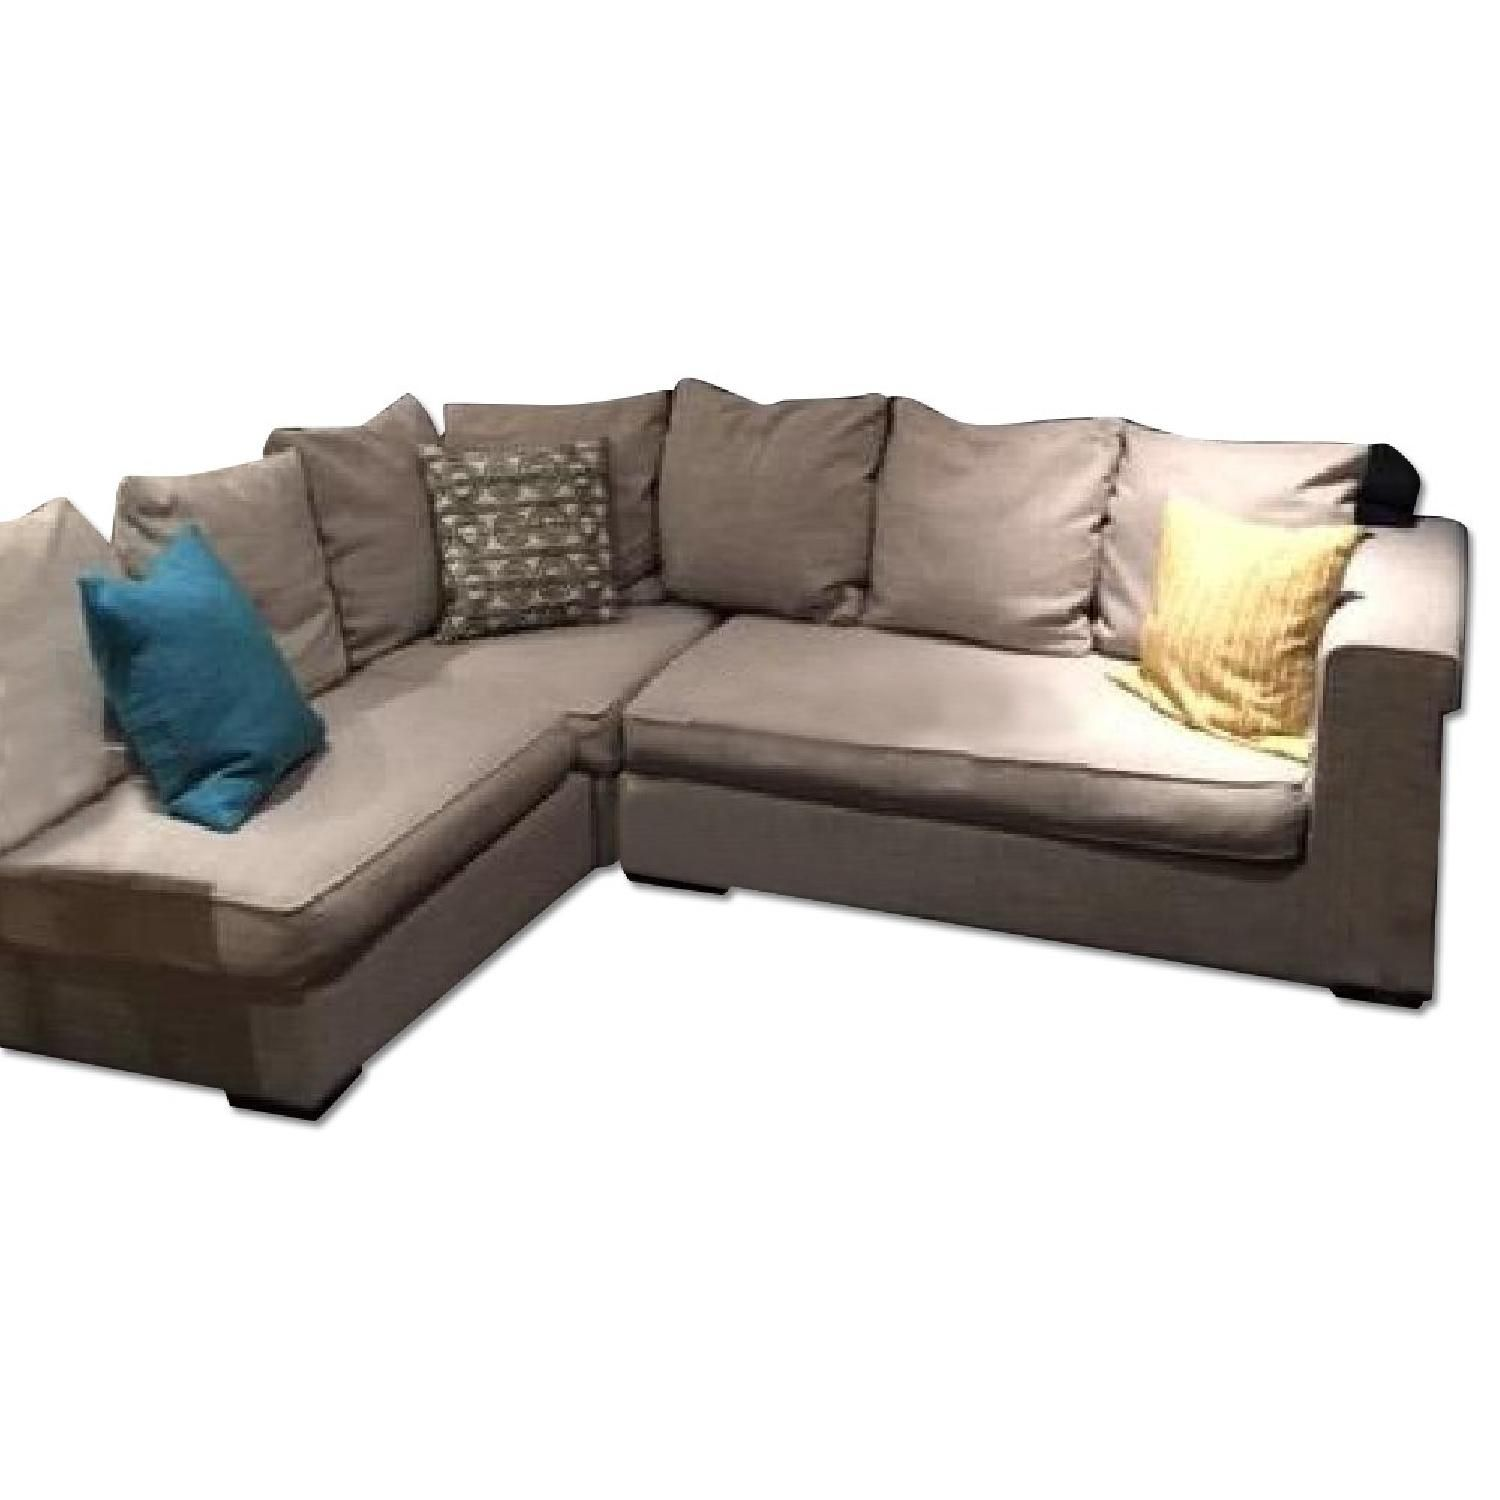 West Elm Tan Linen Weave 3 Piece Walton Sectional Sofa